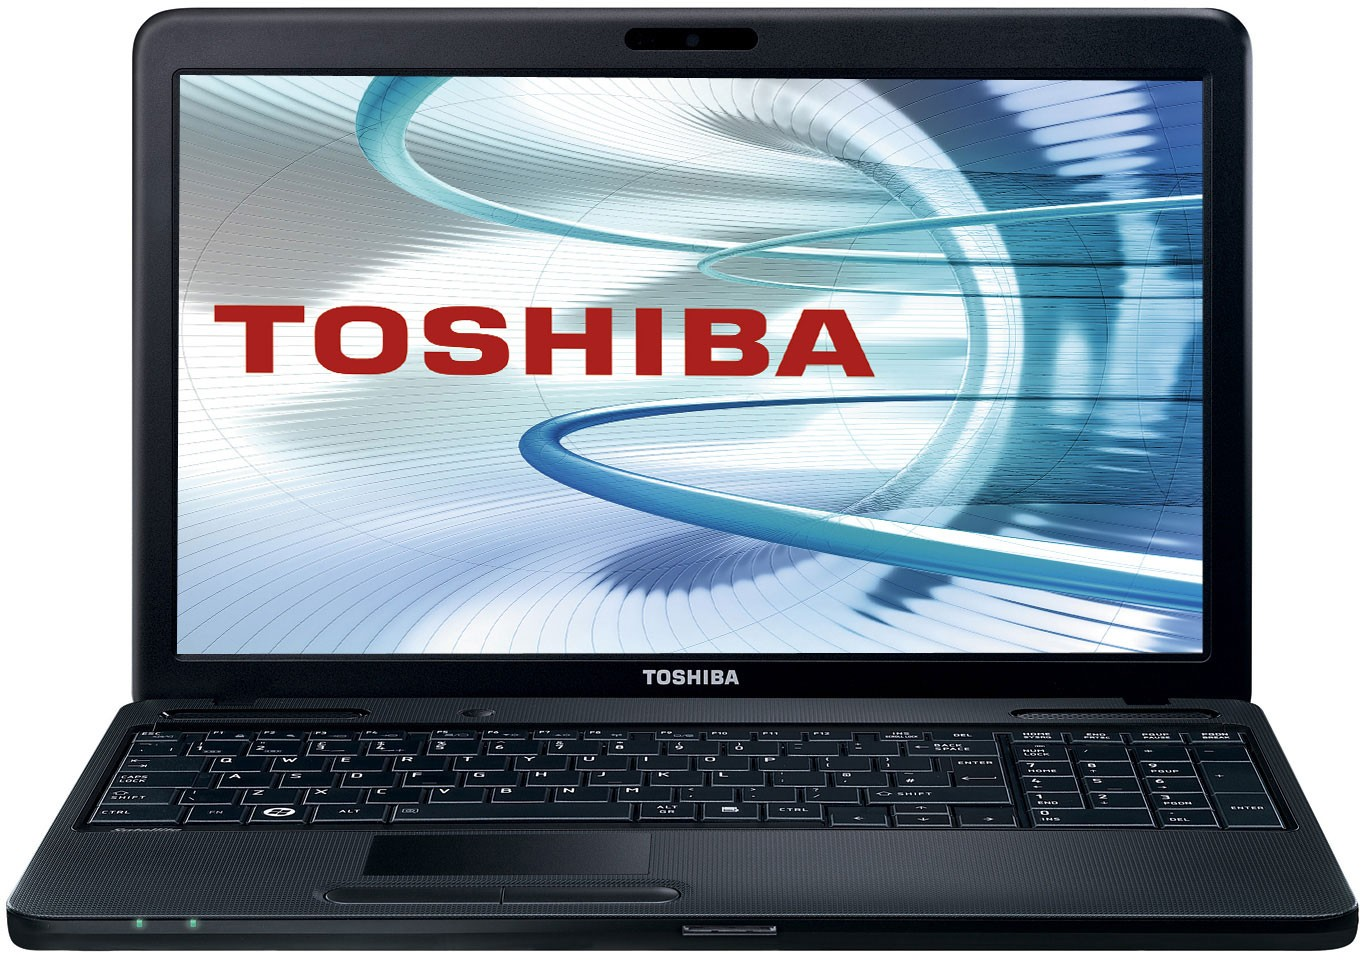 Chicony Usb 2.0 Camera Driver Windows 7 Toshiba Download